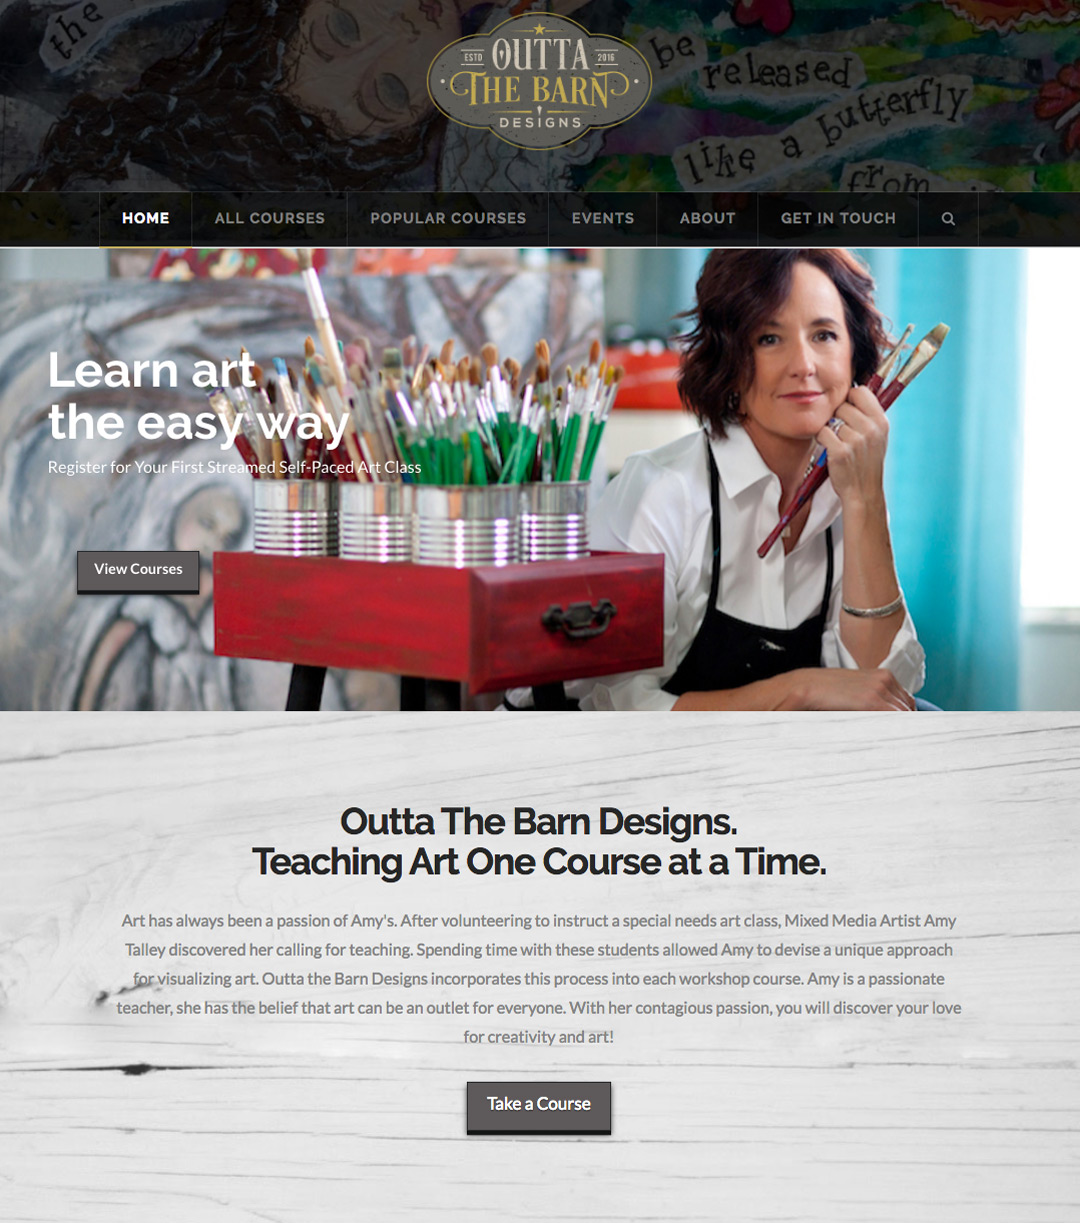 Website Design for Selling Art Classes Online